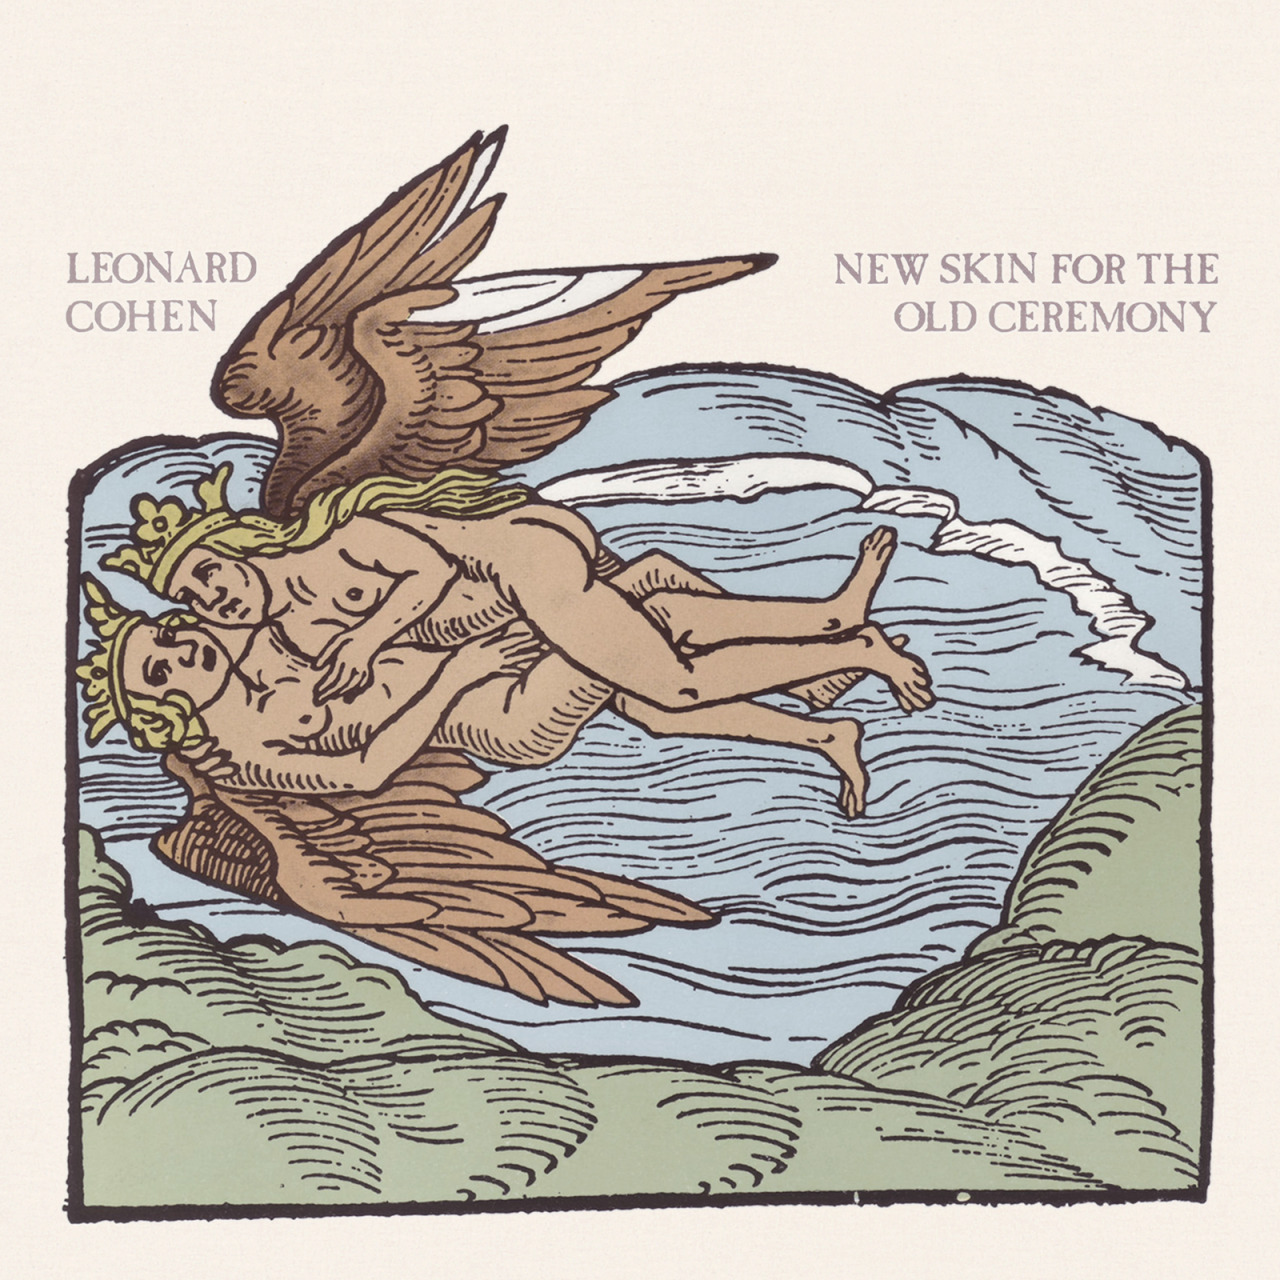 Leonard Cohen 'New Skin for the Old Ceremony', Columbia, 1974. Cover illustration is 16th century wood-cut for the book 'Rosarium philosophorum sive pretiosissimum donum Dei'. Designed by Teresa Alfieri.